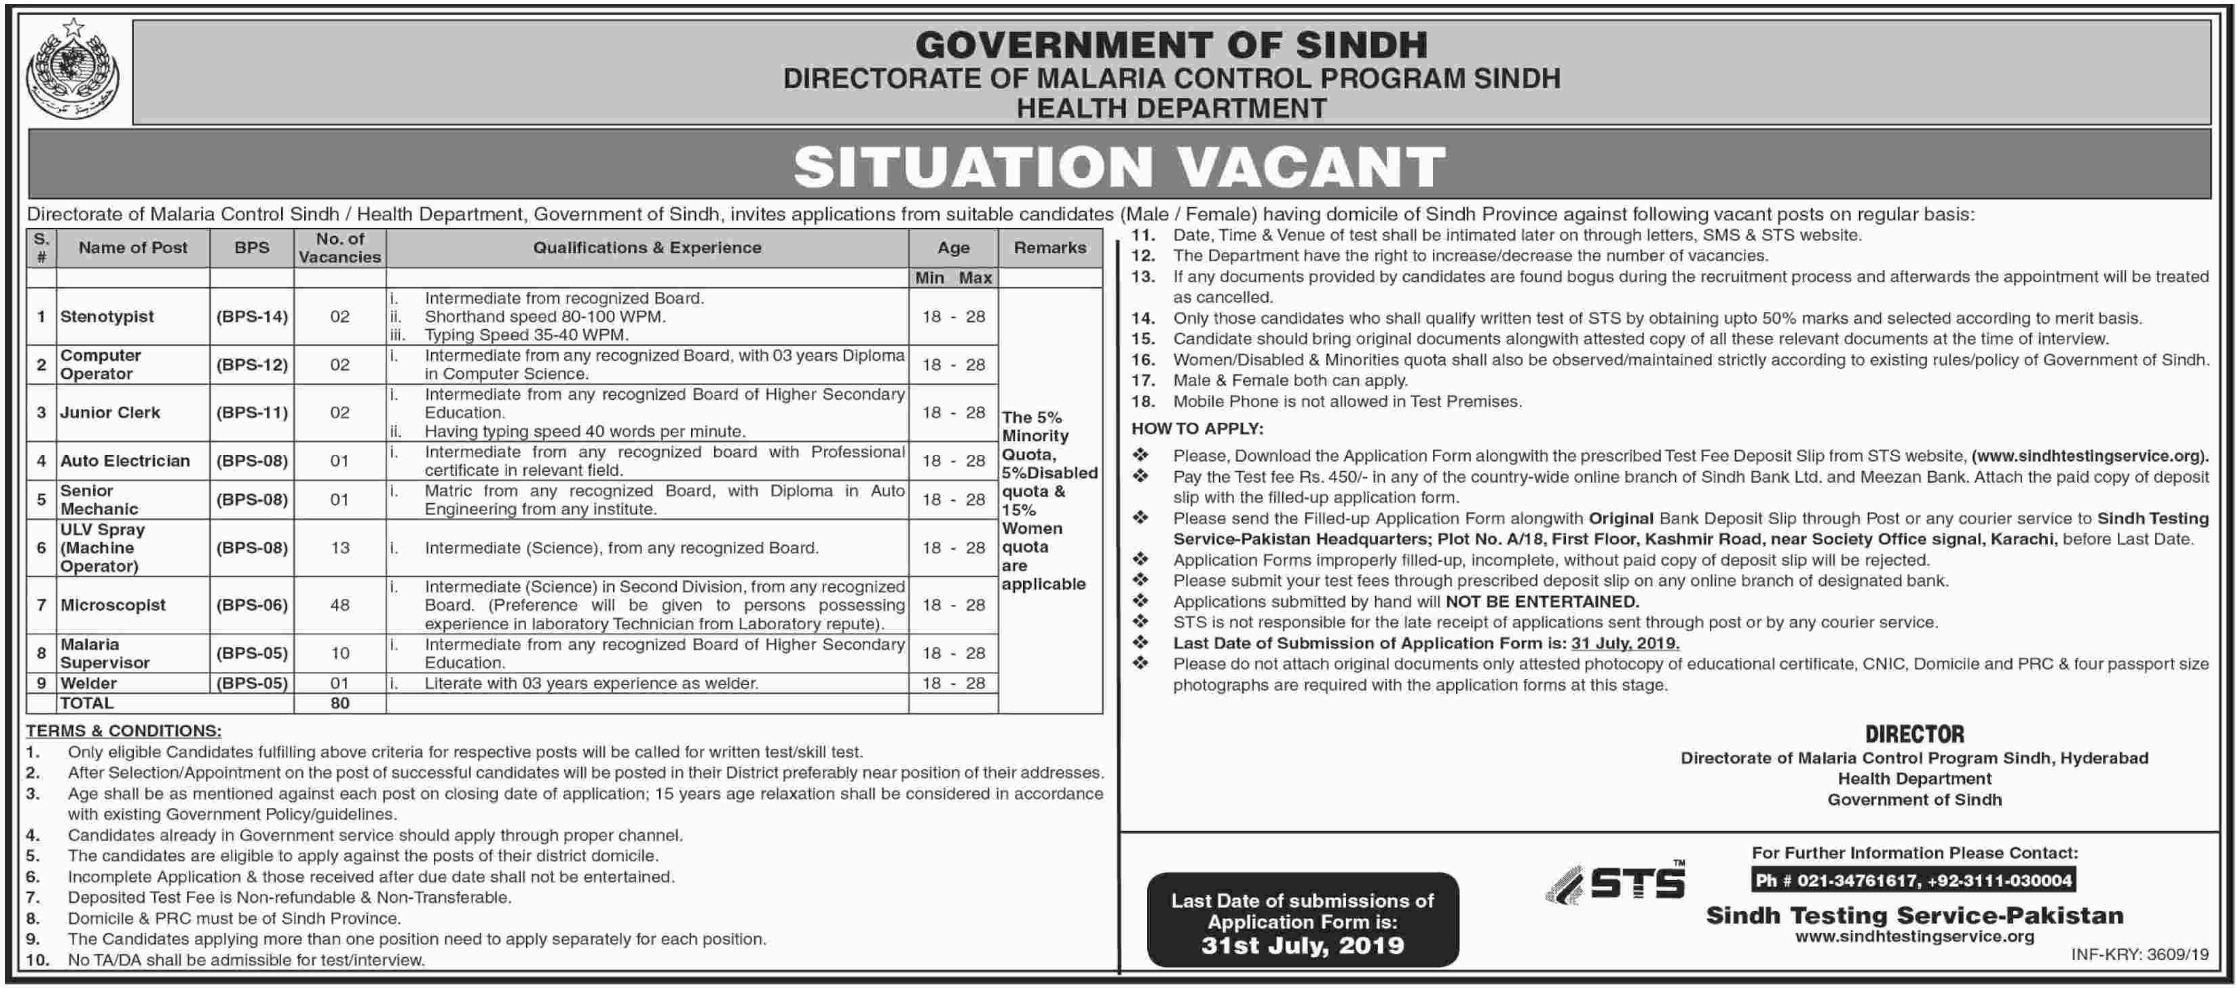 Sindh Health Department Jobs 2019 Directorate of Malaria Control Program